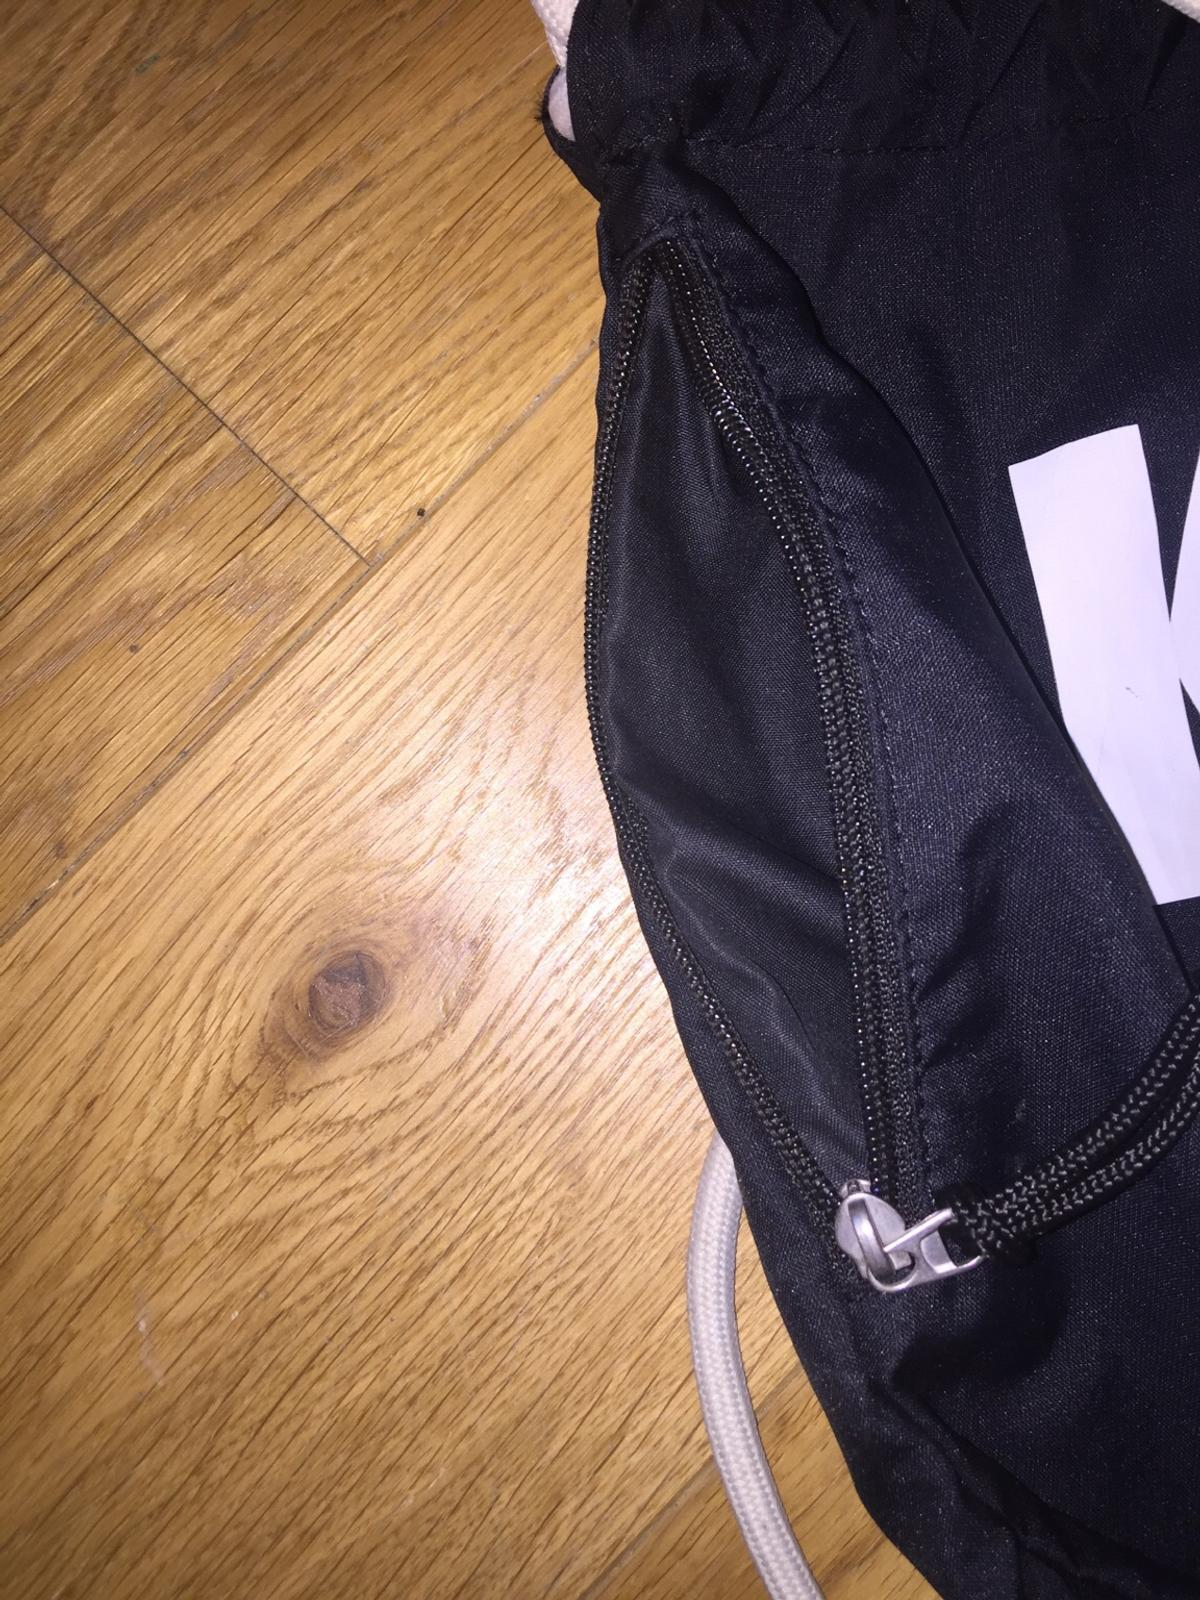 bcd5c5c6e10b6 Nike Air Tasche Beutel in 95138 Bad Steben for €15.00 for sale - Shpock